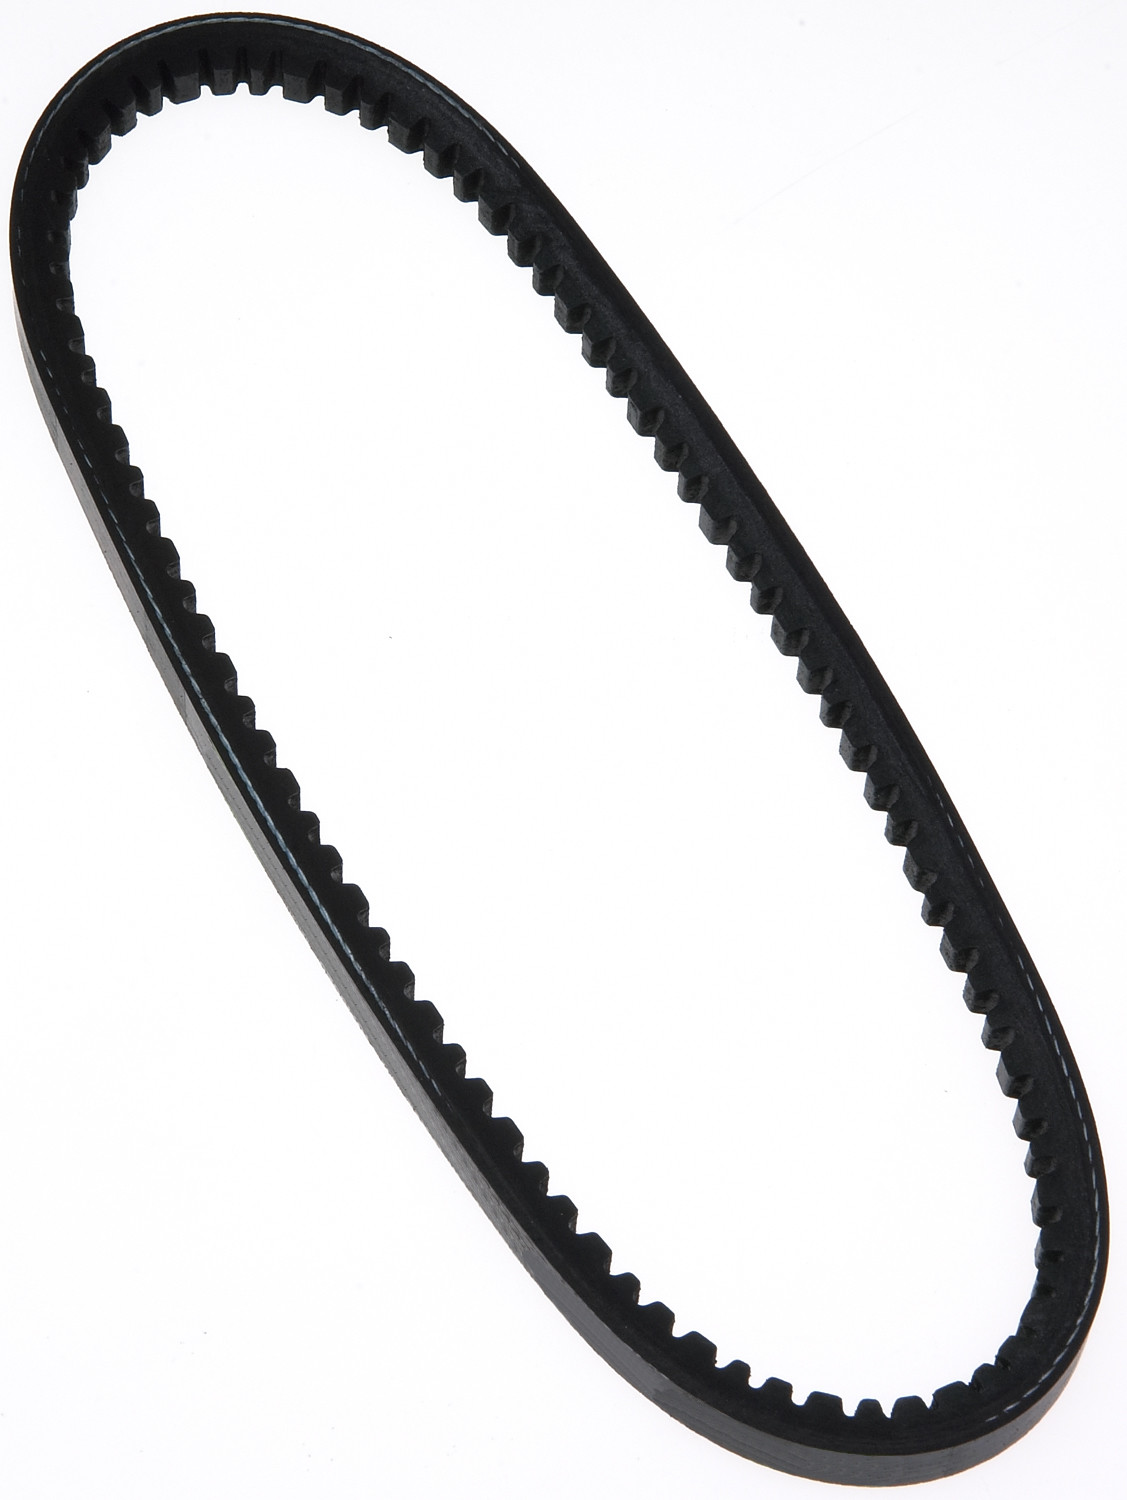 ROADMAX - High Capacity V-belt(standard) - RMX 17570AP